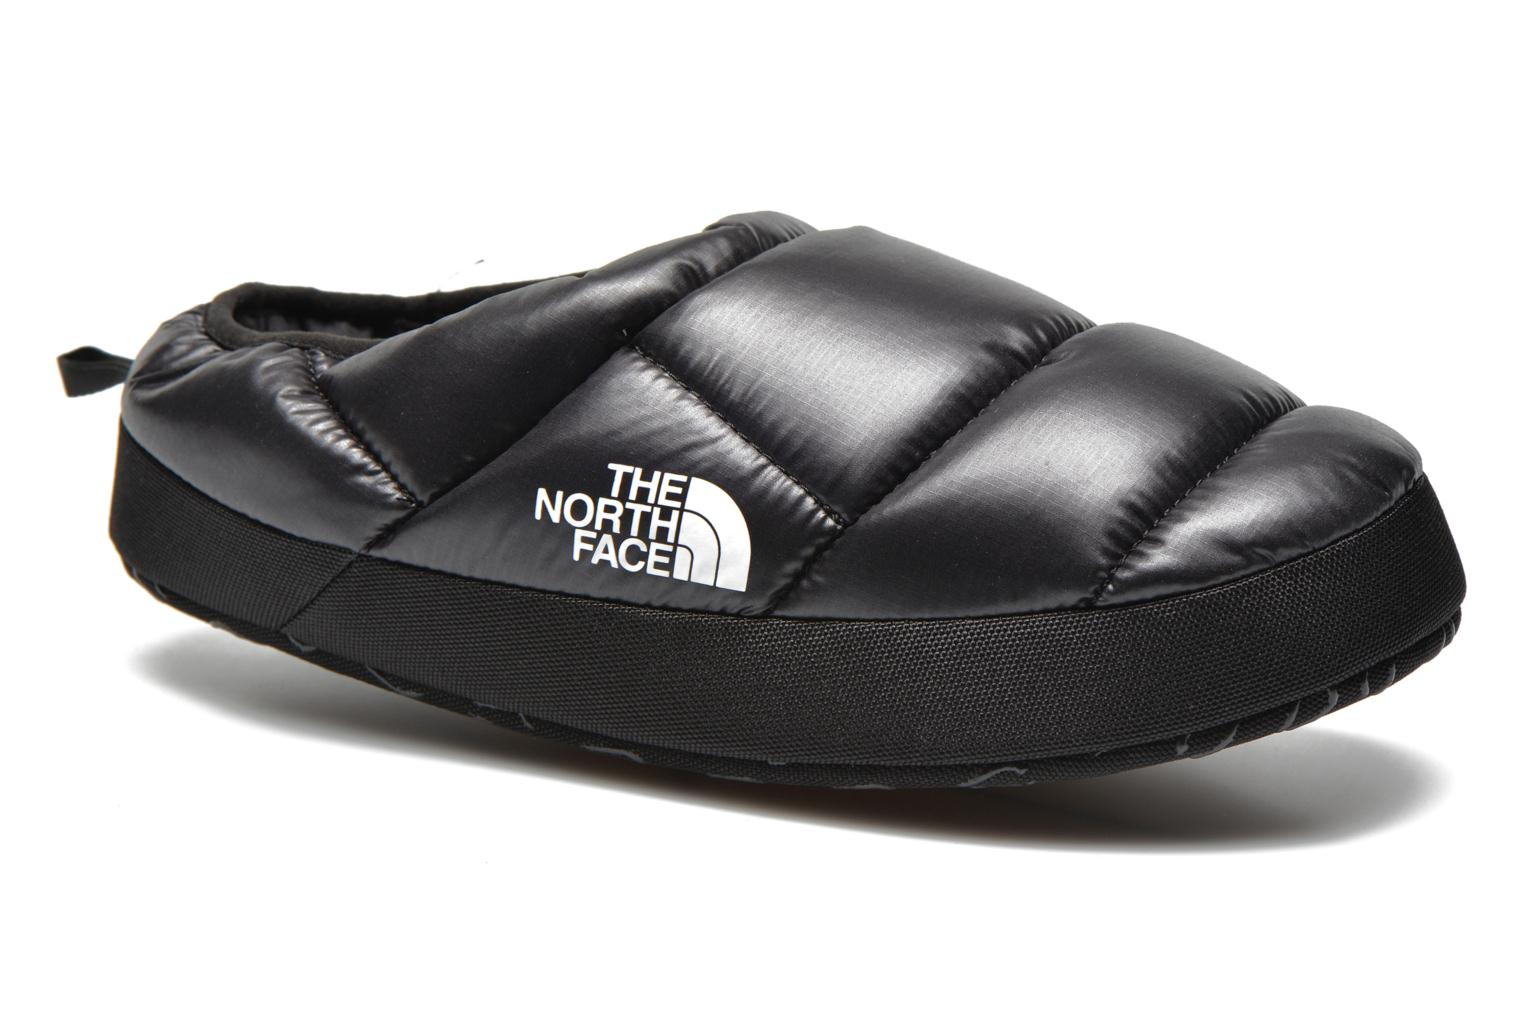 The Mule North Tent Iii Nse Face Blackblack Shiny M lcFKJ1